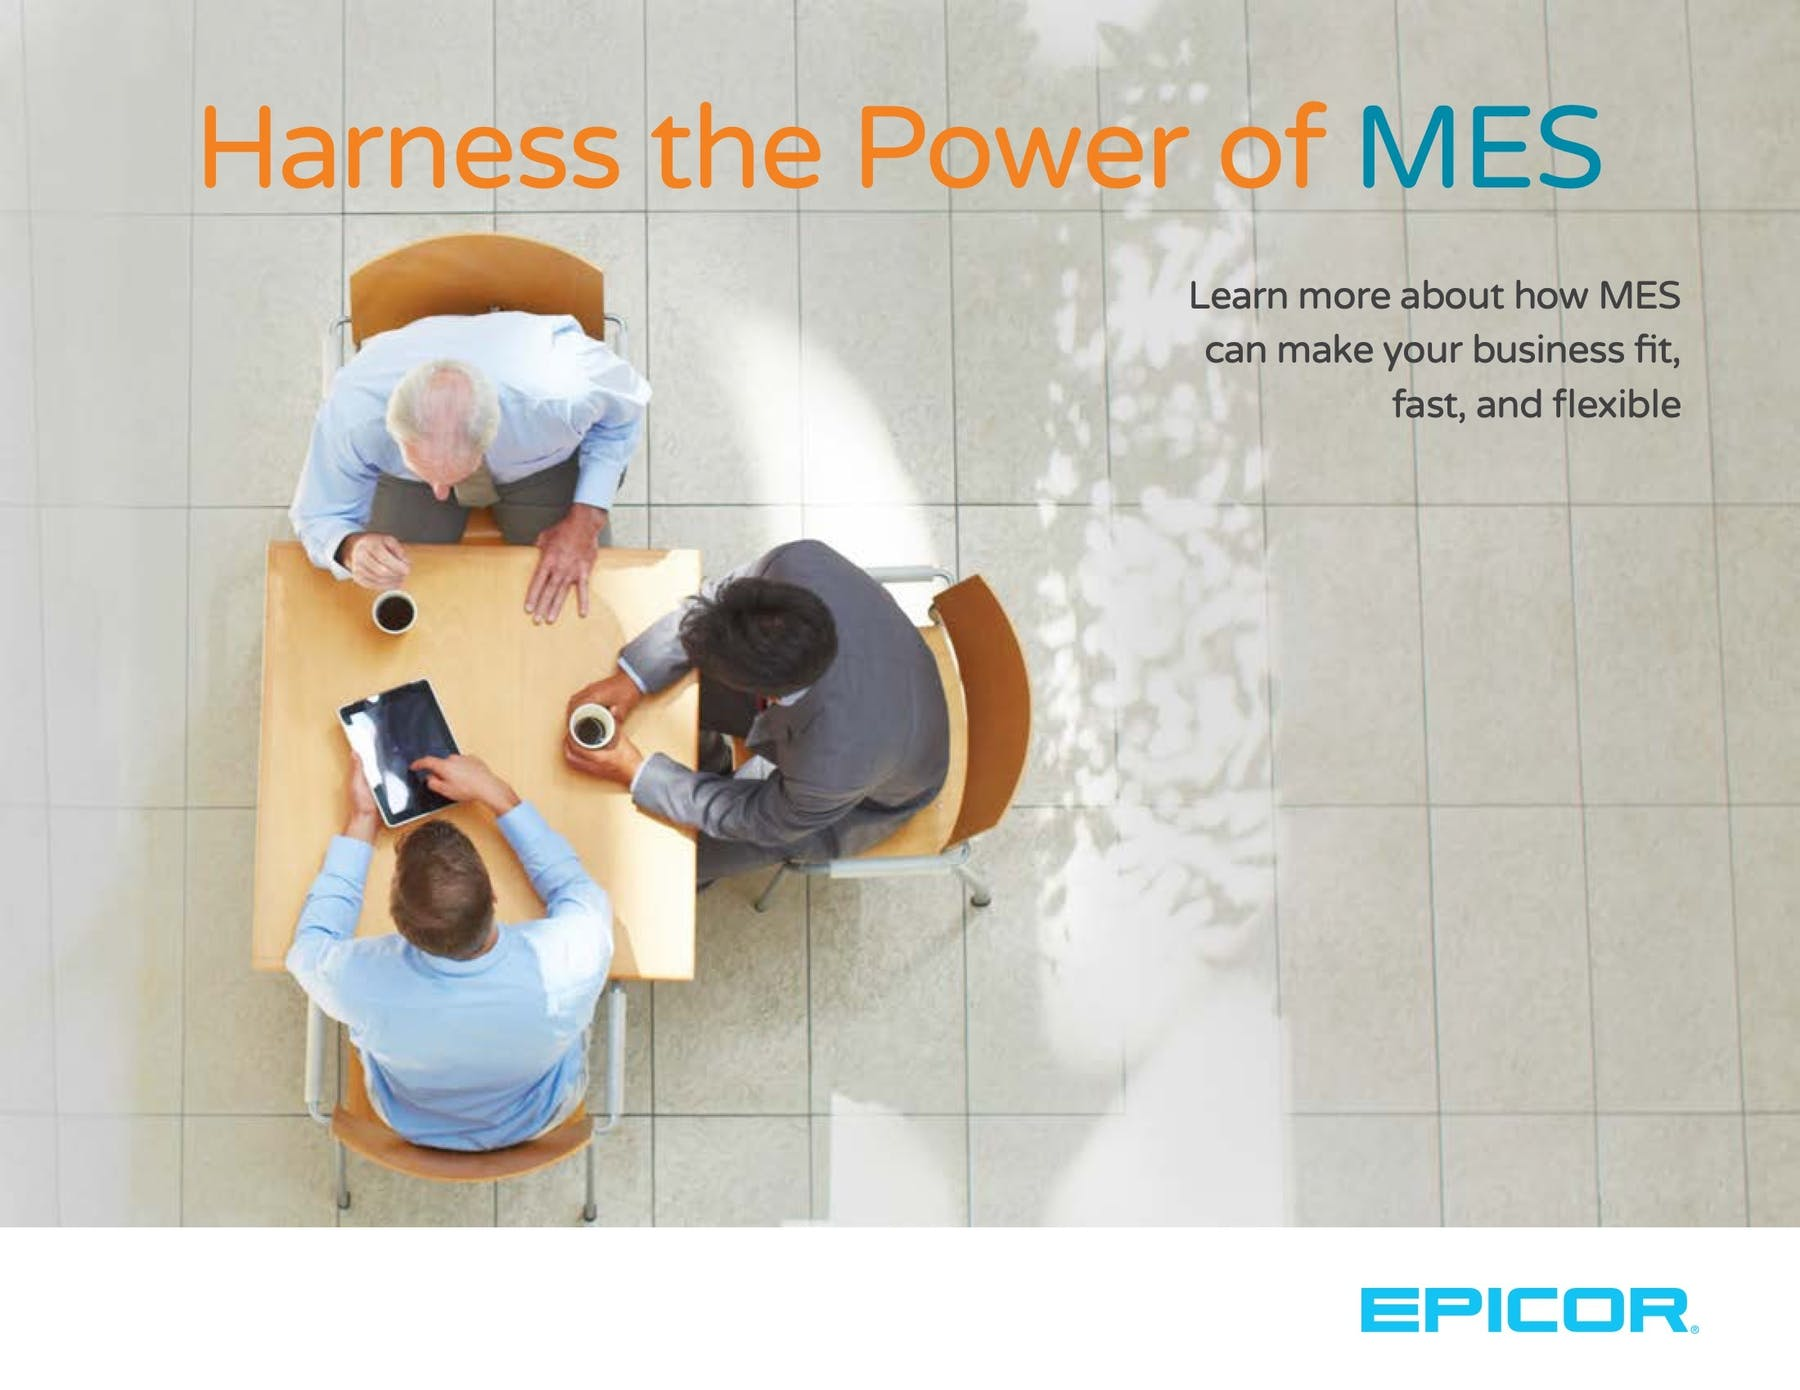 Epicor Mattec (Advanced MES) White Paper - Harness the Power of MES